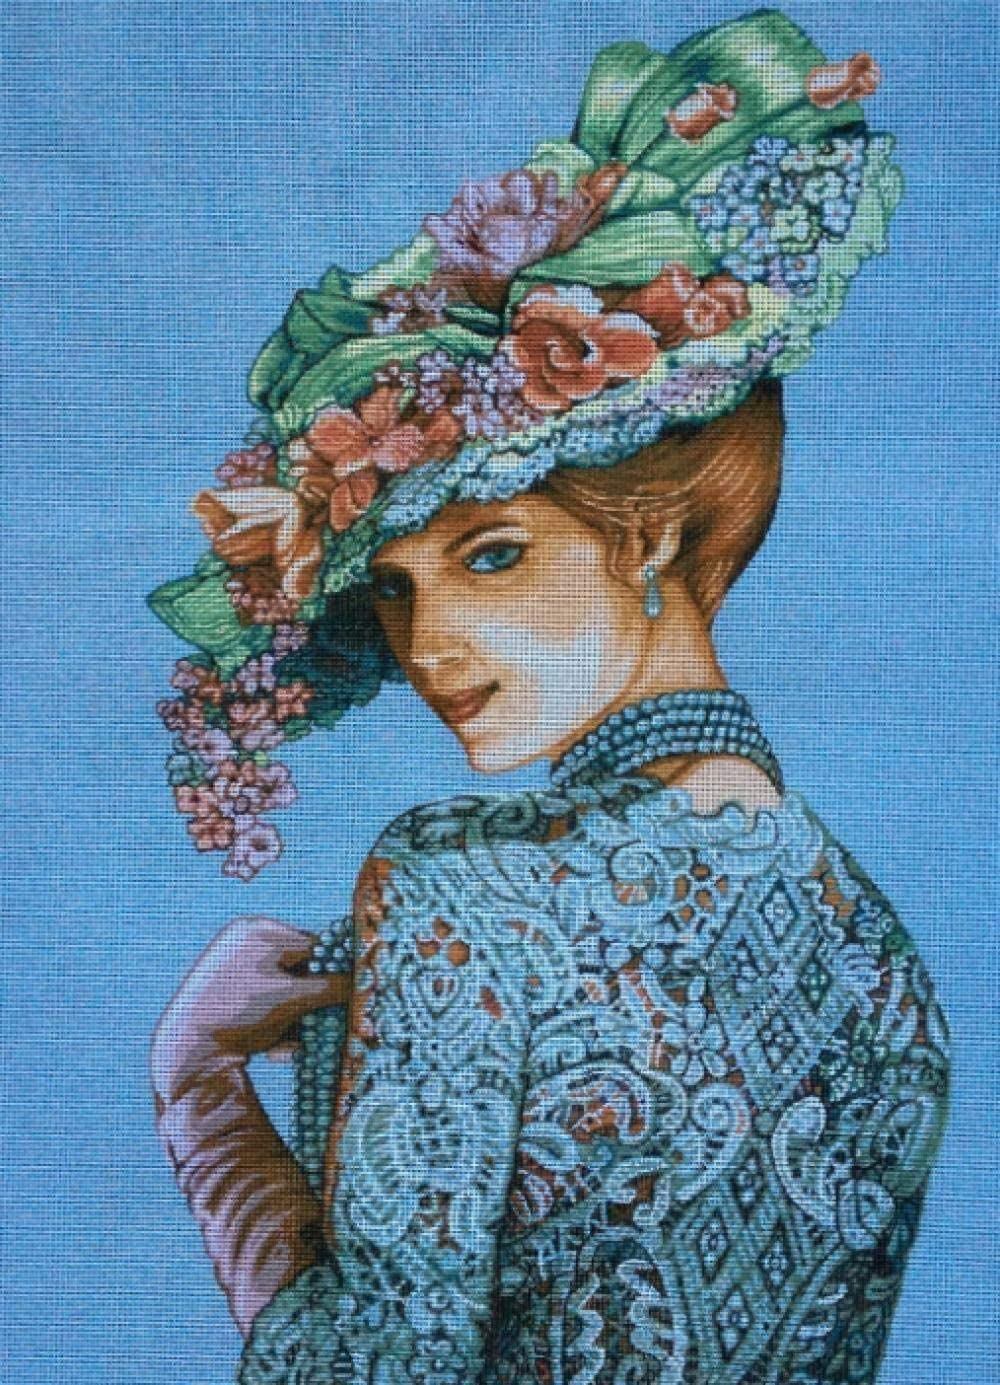 Stamped Cross Stitch Kits Beginners for Max 83% OFF Today's only wi Lady Embroidery Adult